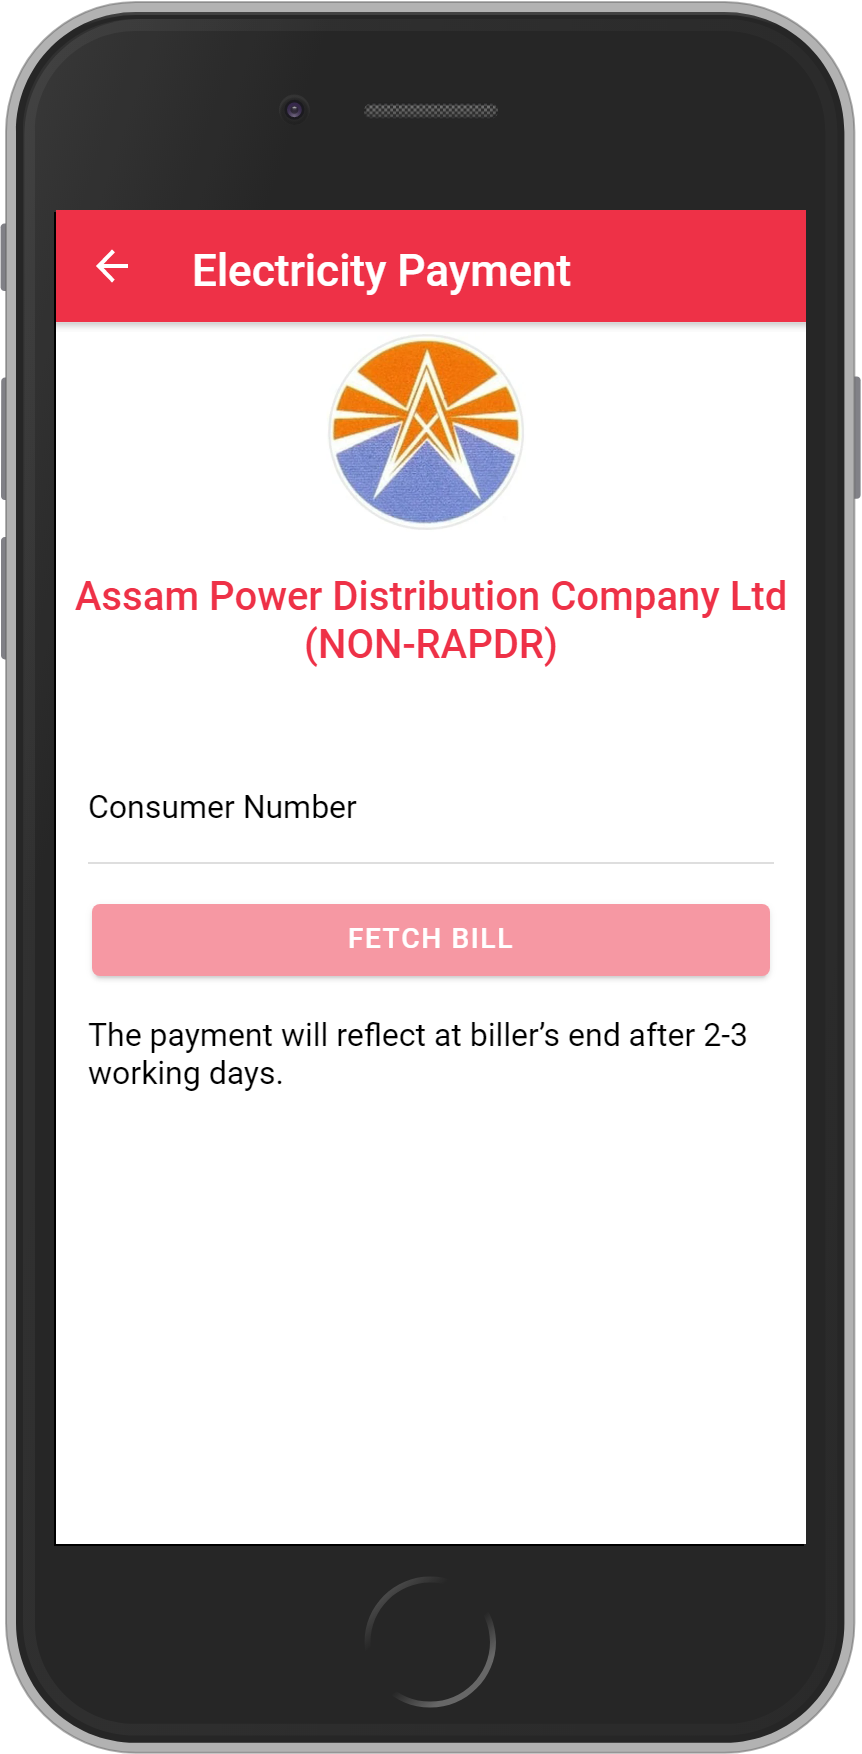 Get UNLIMITED <b>0.1%</b> CASHBACK on Assam Power Distribution Company Ltd (NON-RAPDR) Bill Payment.